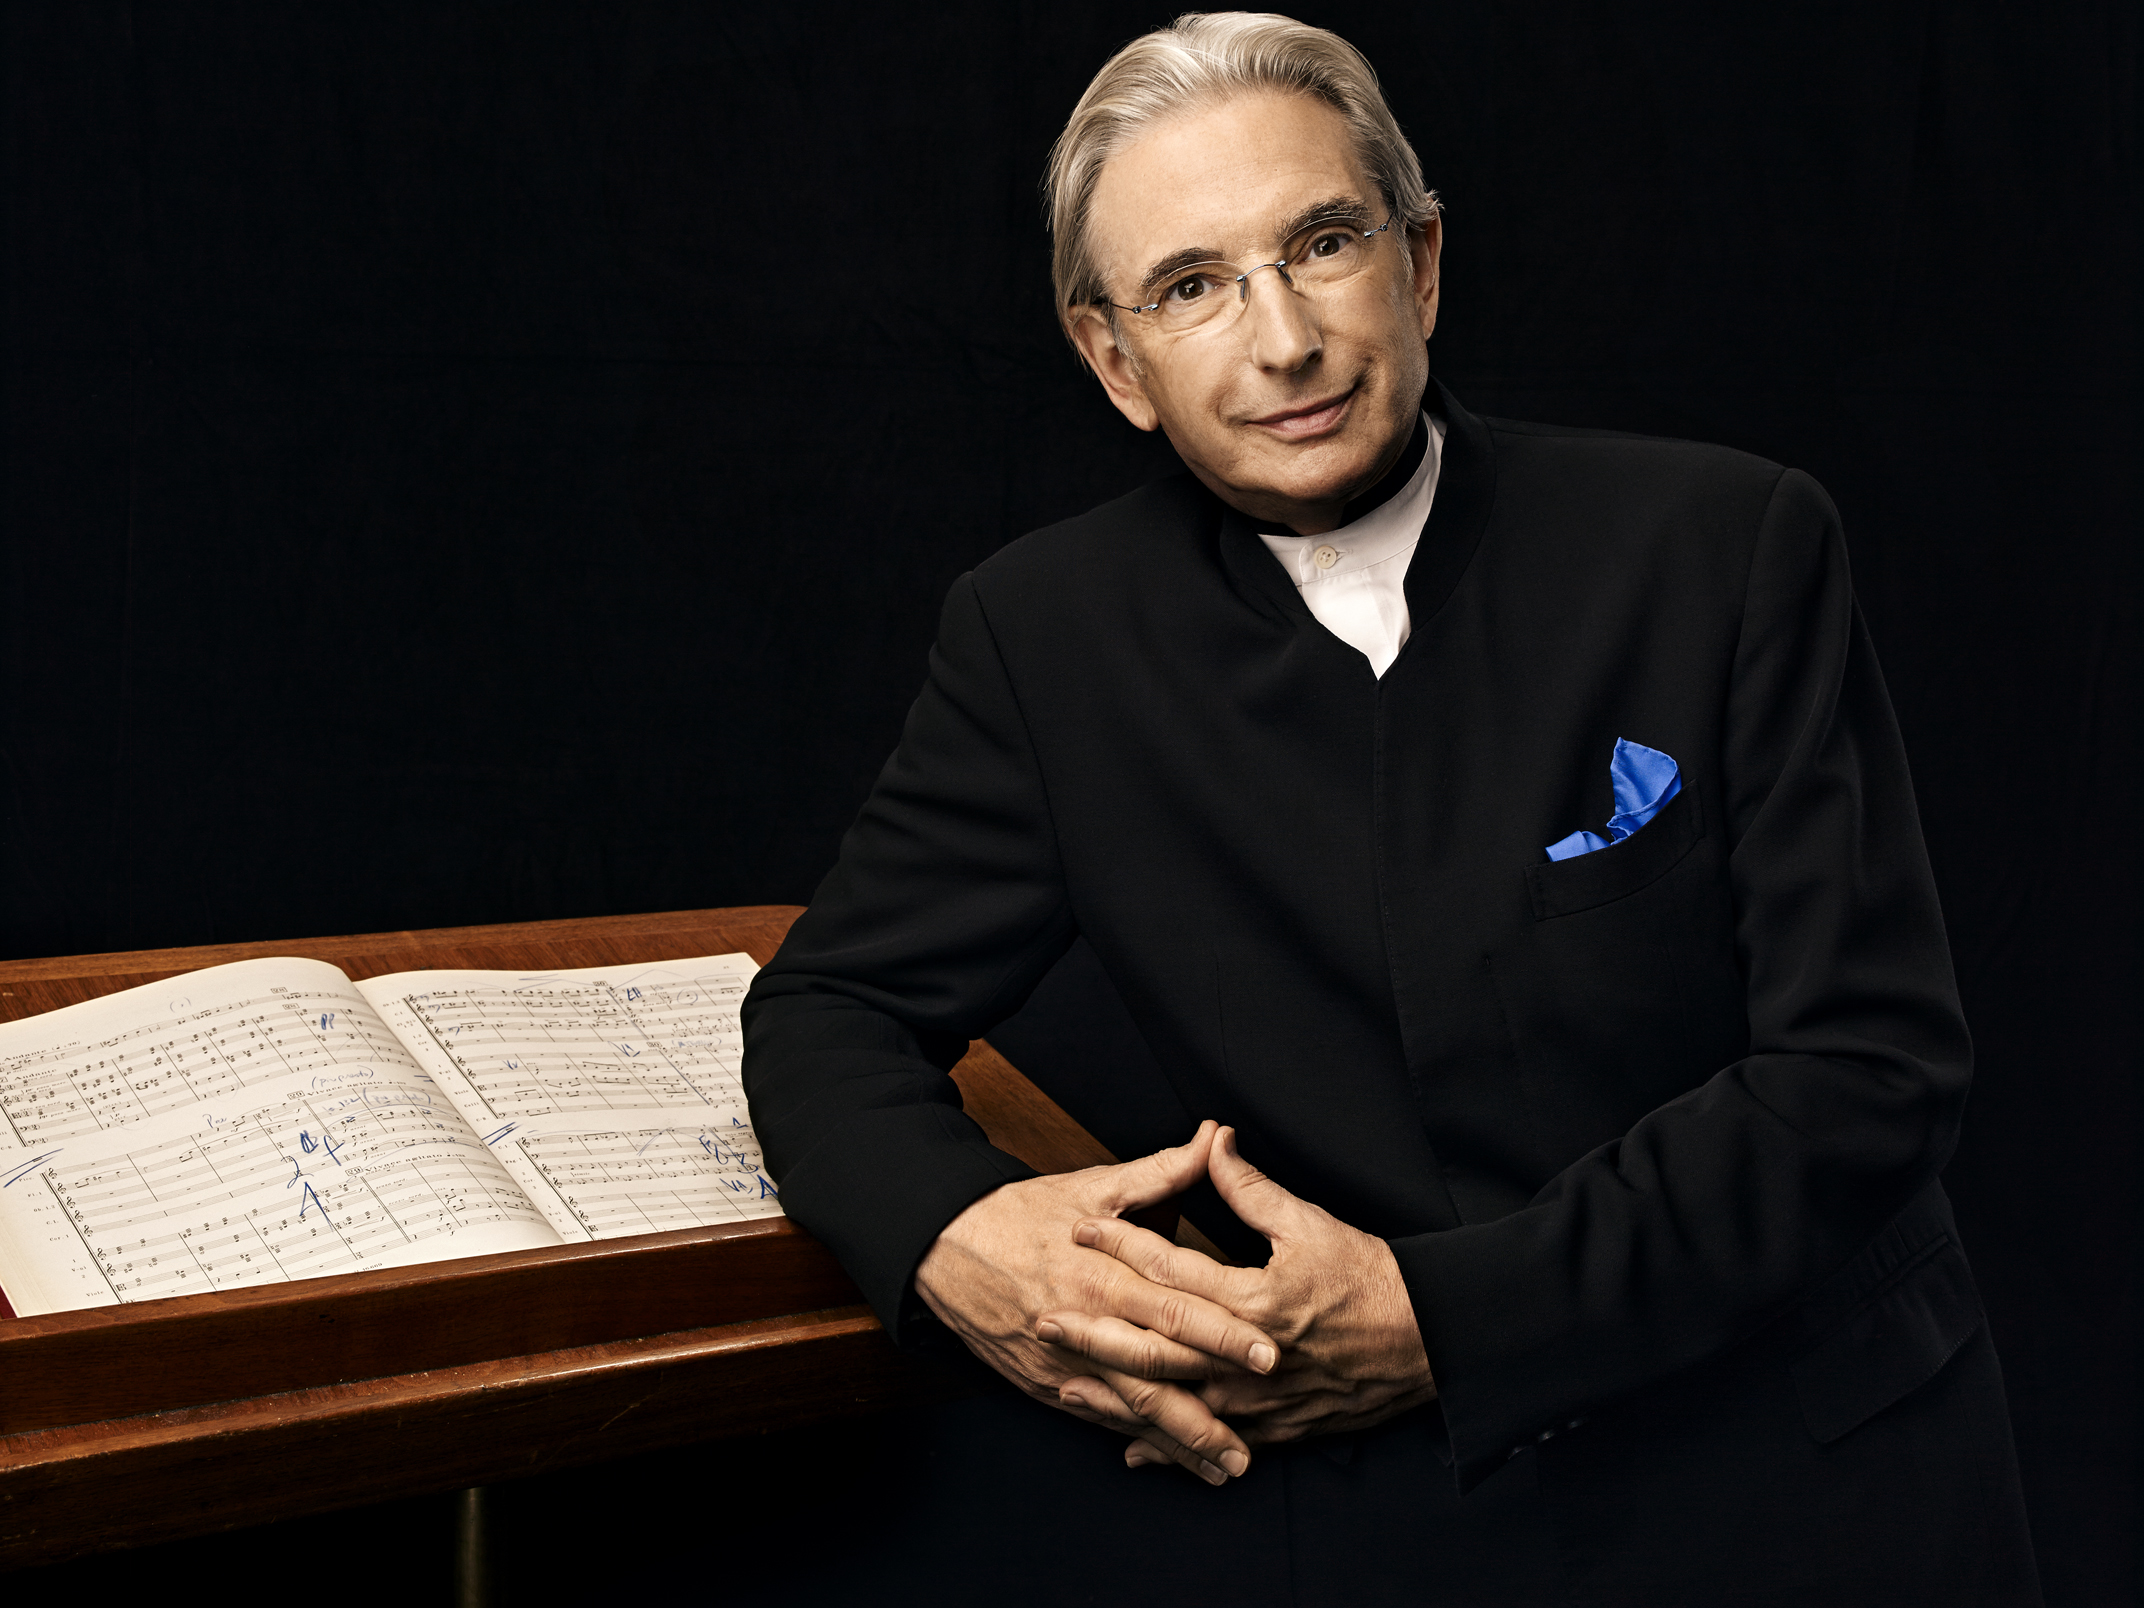 Michael Tilson Thomas. Photo by Art Streiber